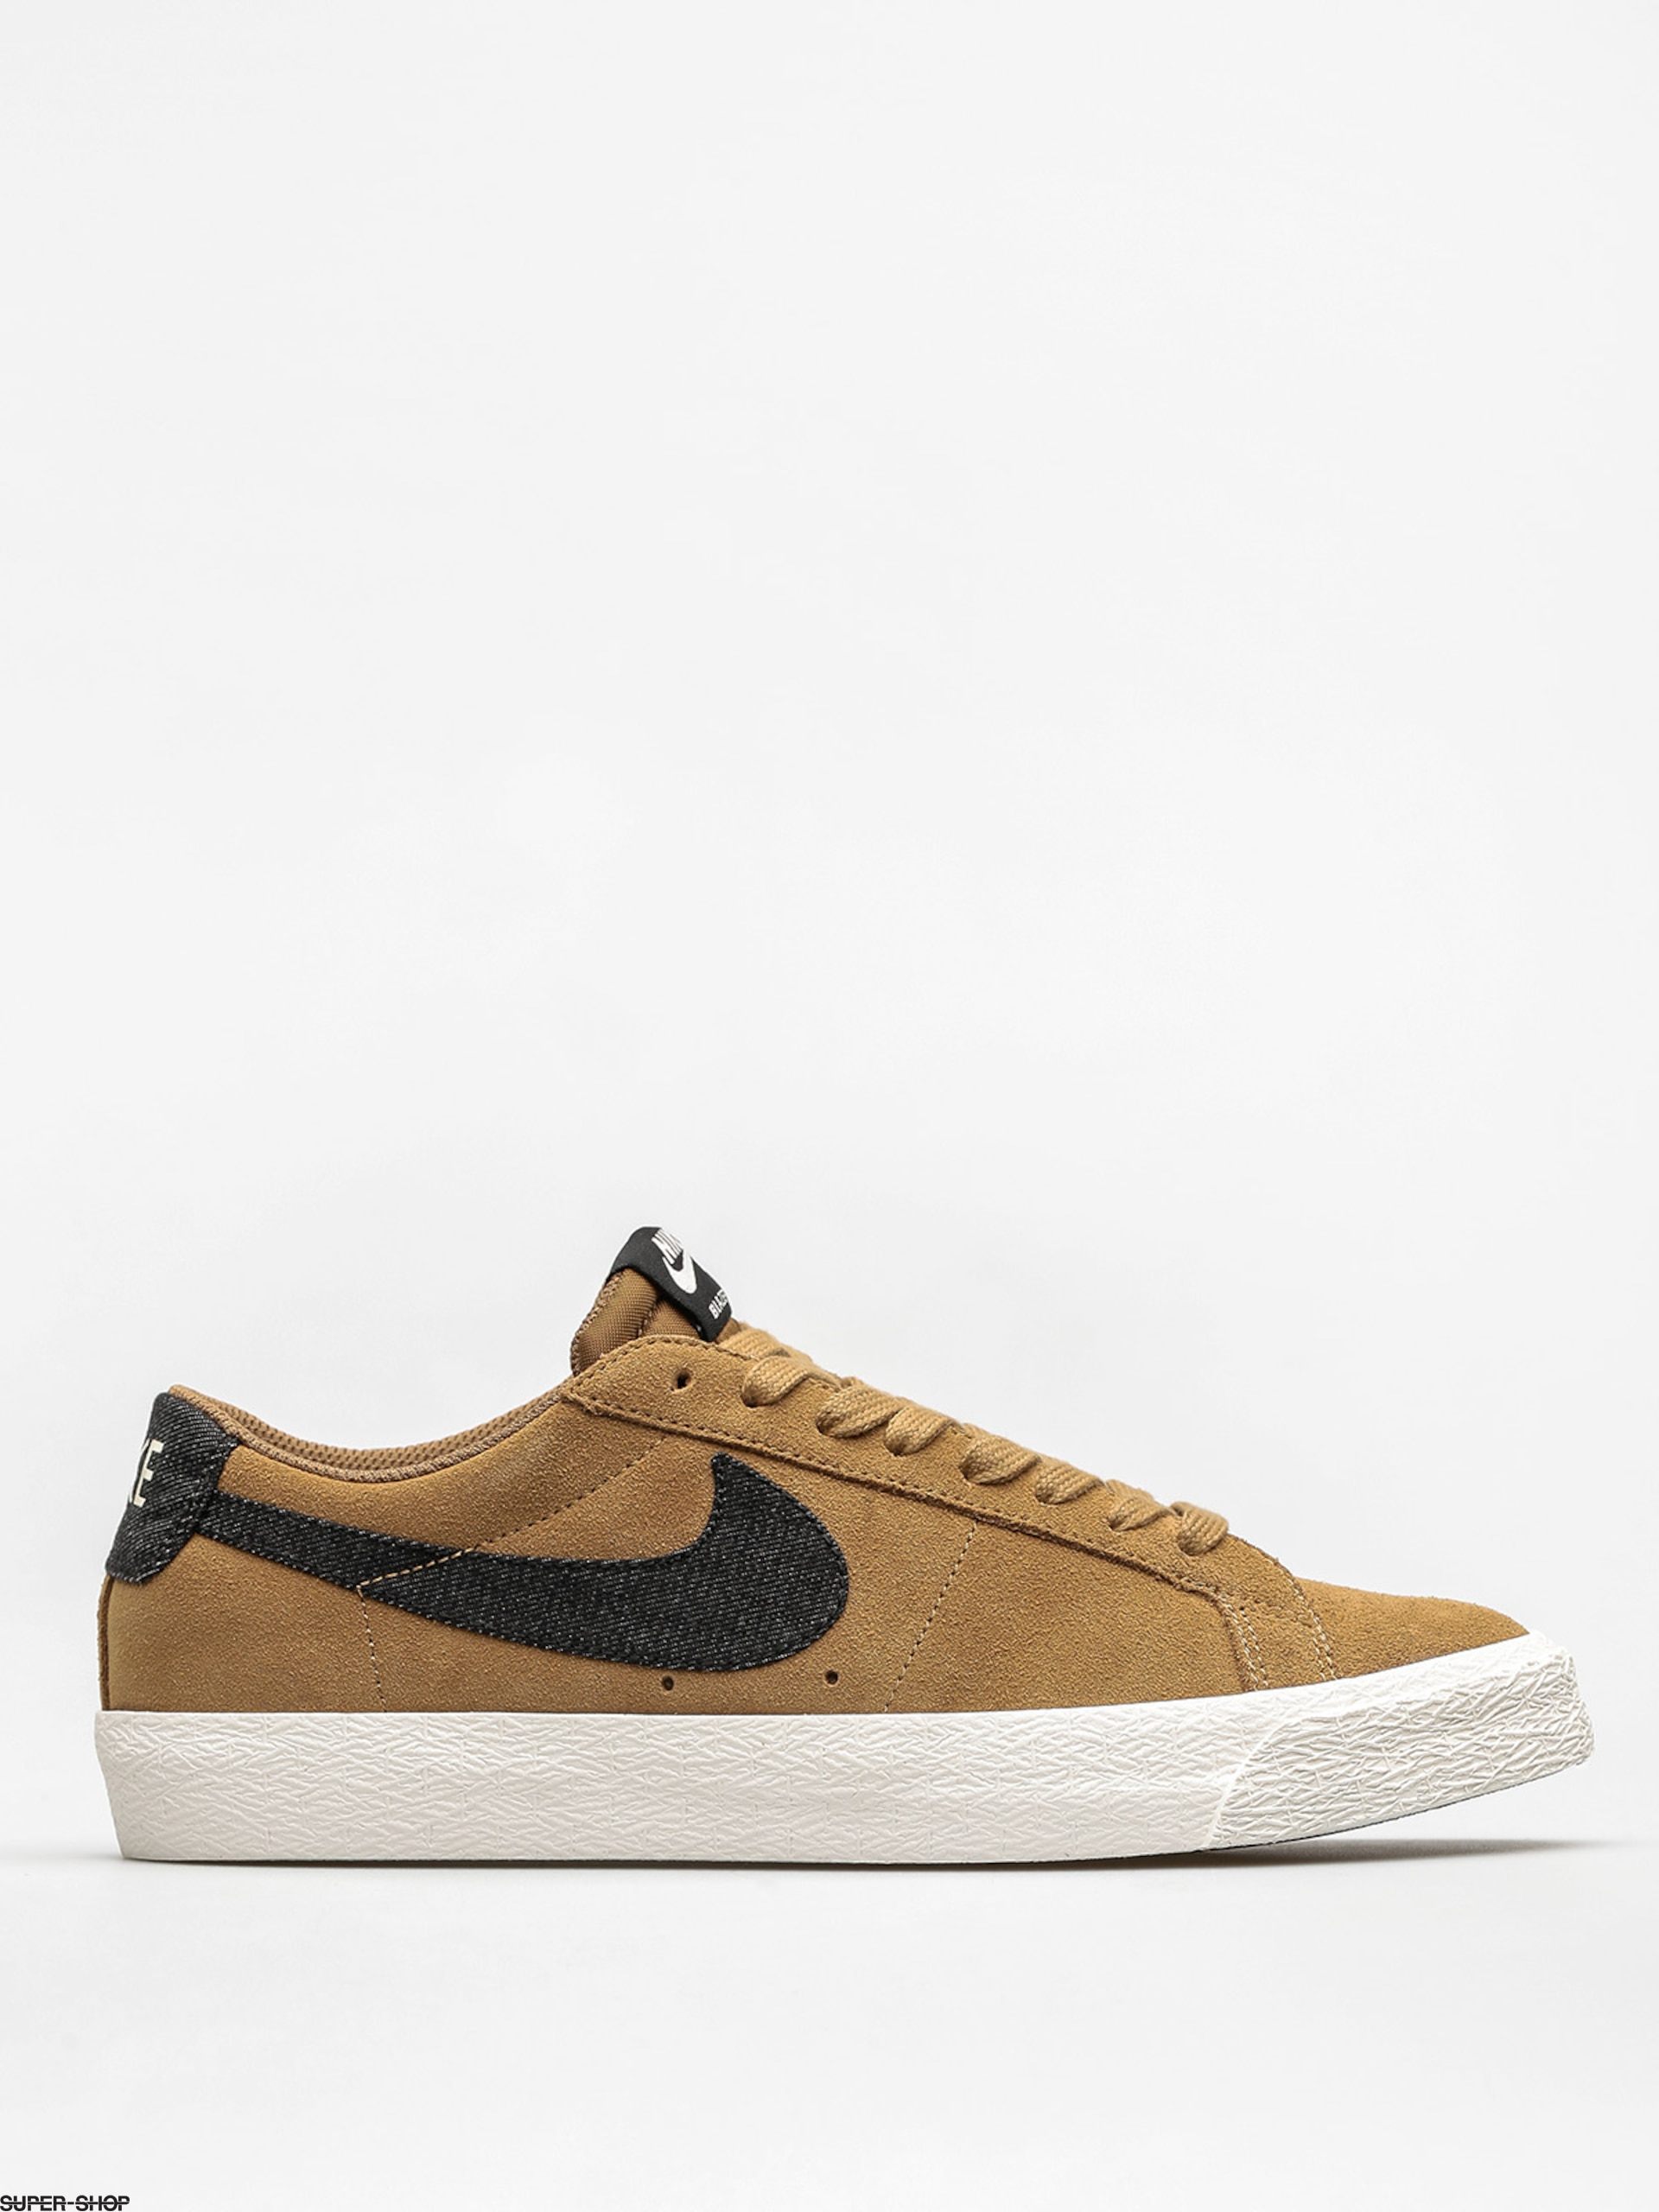 the latest 67c34 e3517 ... where to buy nike sb shoes zoom blazer low golden beige black sail gum  light brown